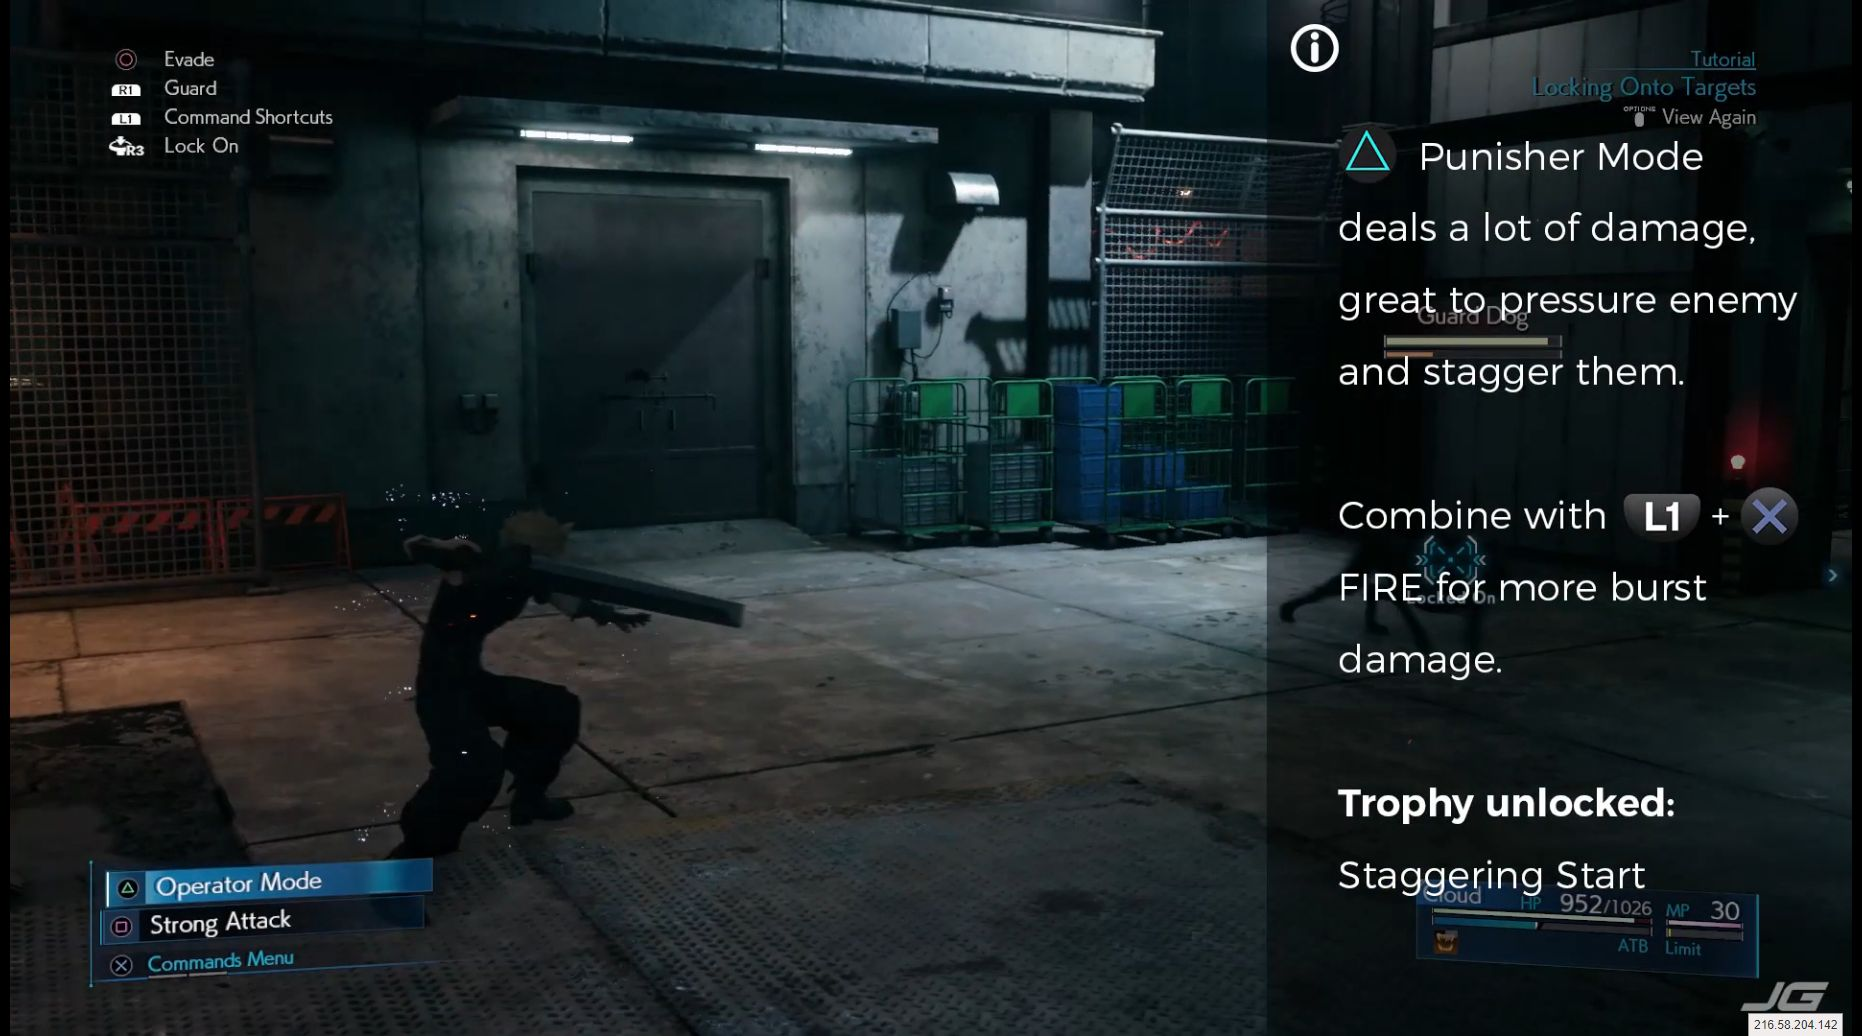 (Triangle) Punisher Mode deals a lot of damage, great to pressure enemy and stagger them Combine with (L1 + Cross) FIRE for more burst damage Trophy unlocked: Staggering Start